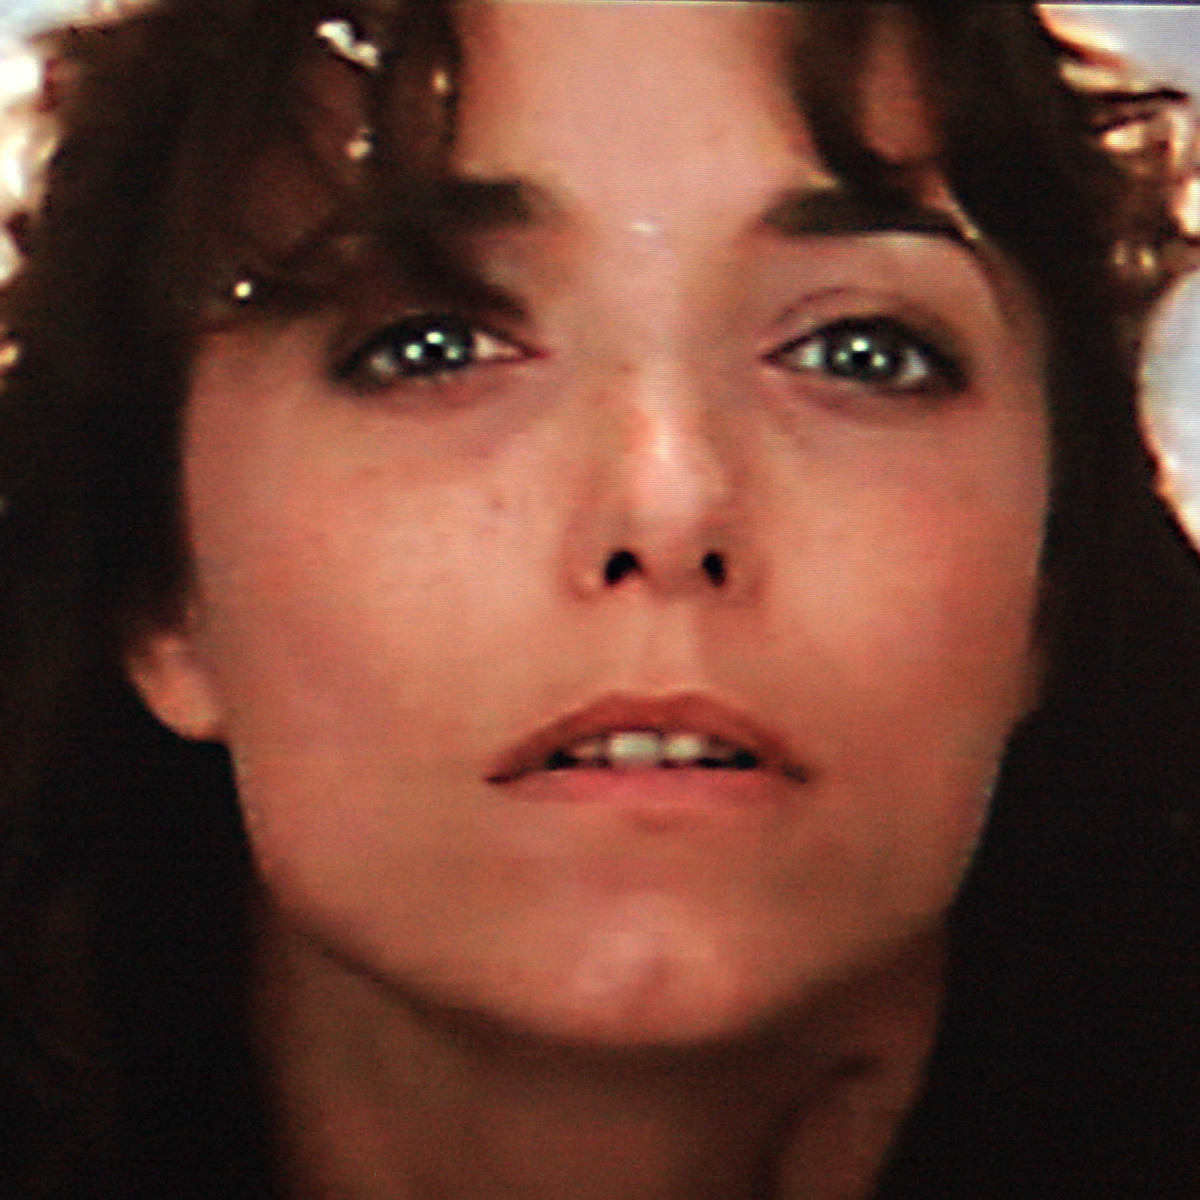 ... and Karen Allen as the Earth woman